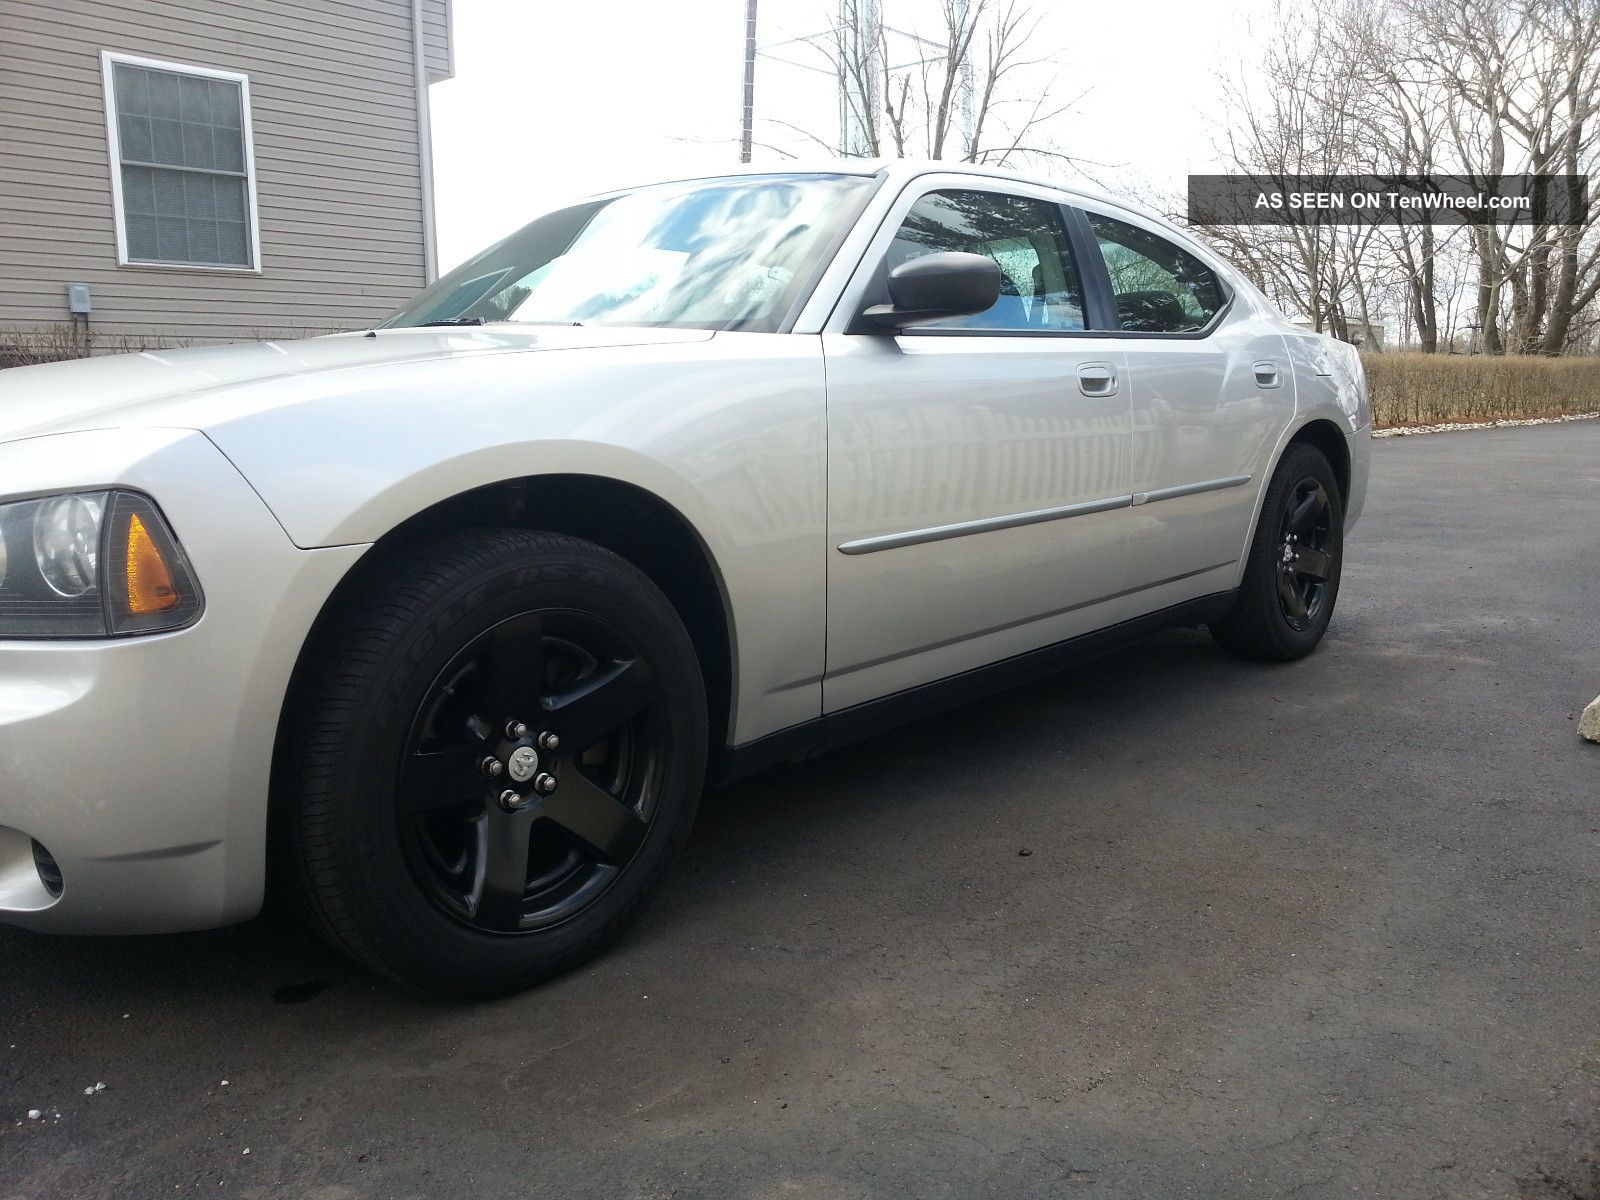 2008 Police Dodge Charger Hemi Highway Patrol